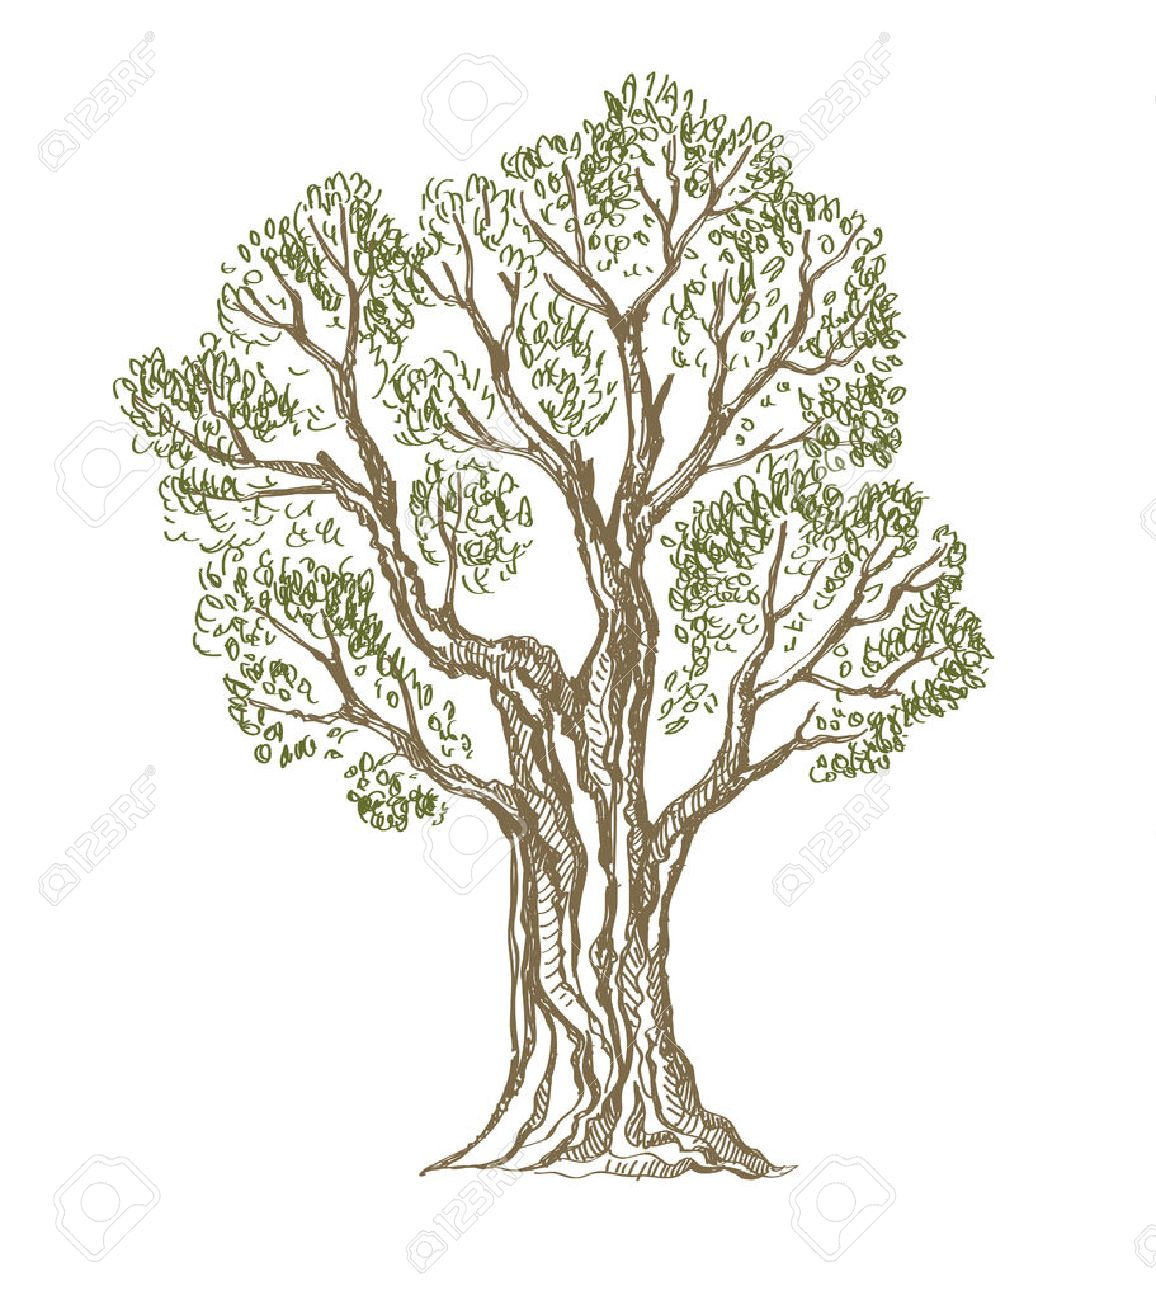 1156x1300 6,889 Oak Tree Drawing Cliparts, Stock Vector And Royalty Free Oak